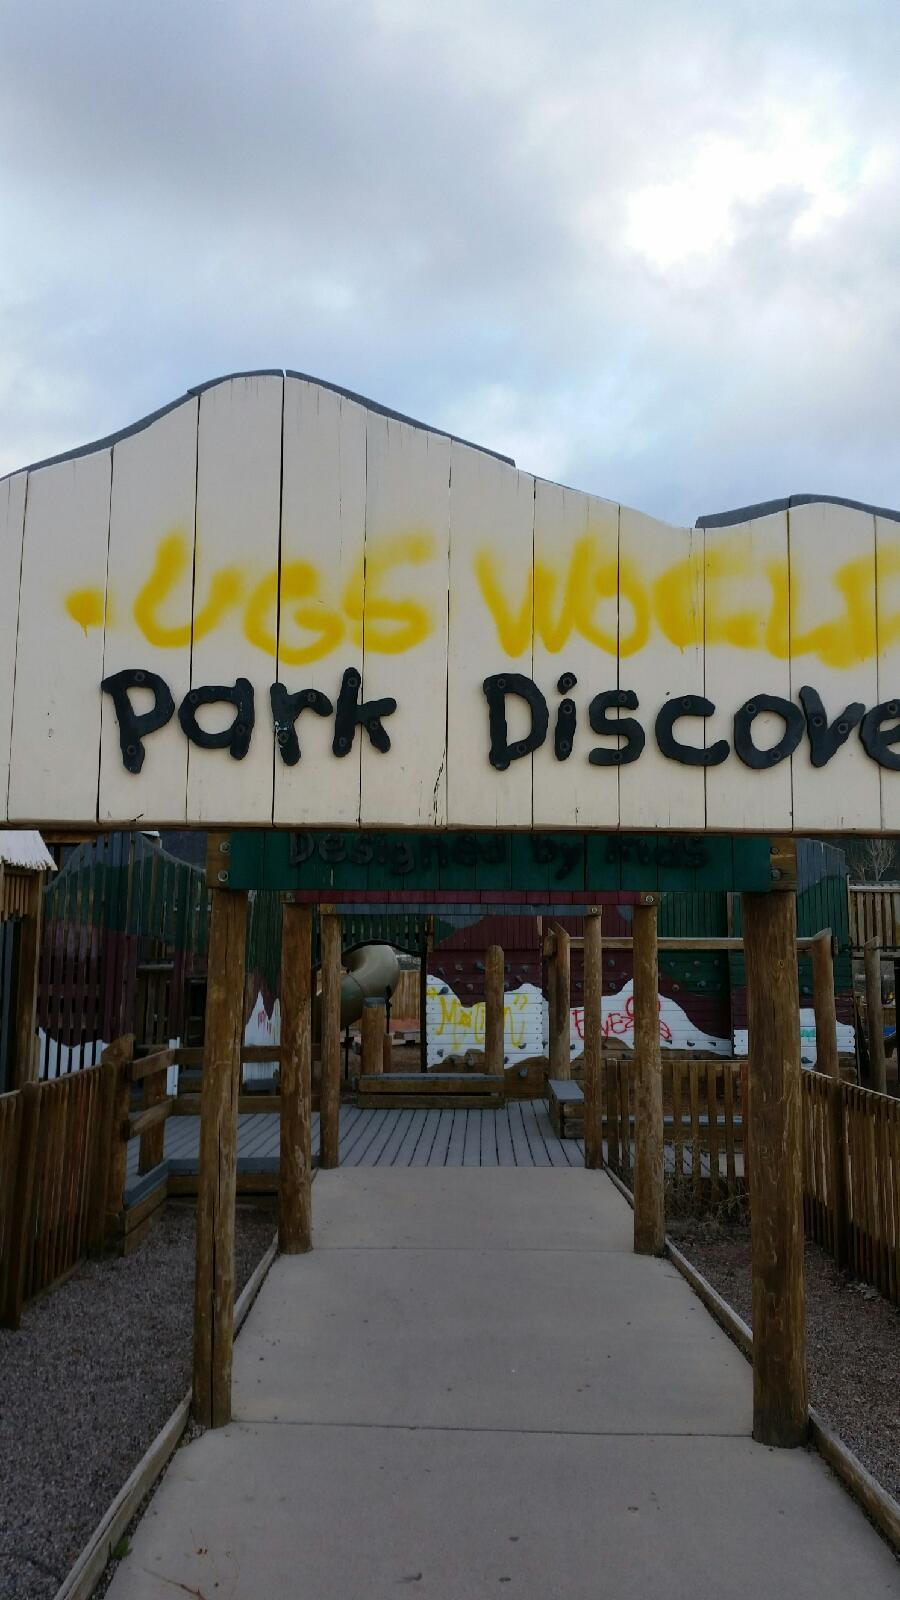 Vandalism Closes Park Discovery Public Volunteer Cleanup Day